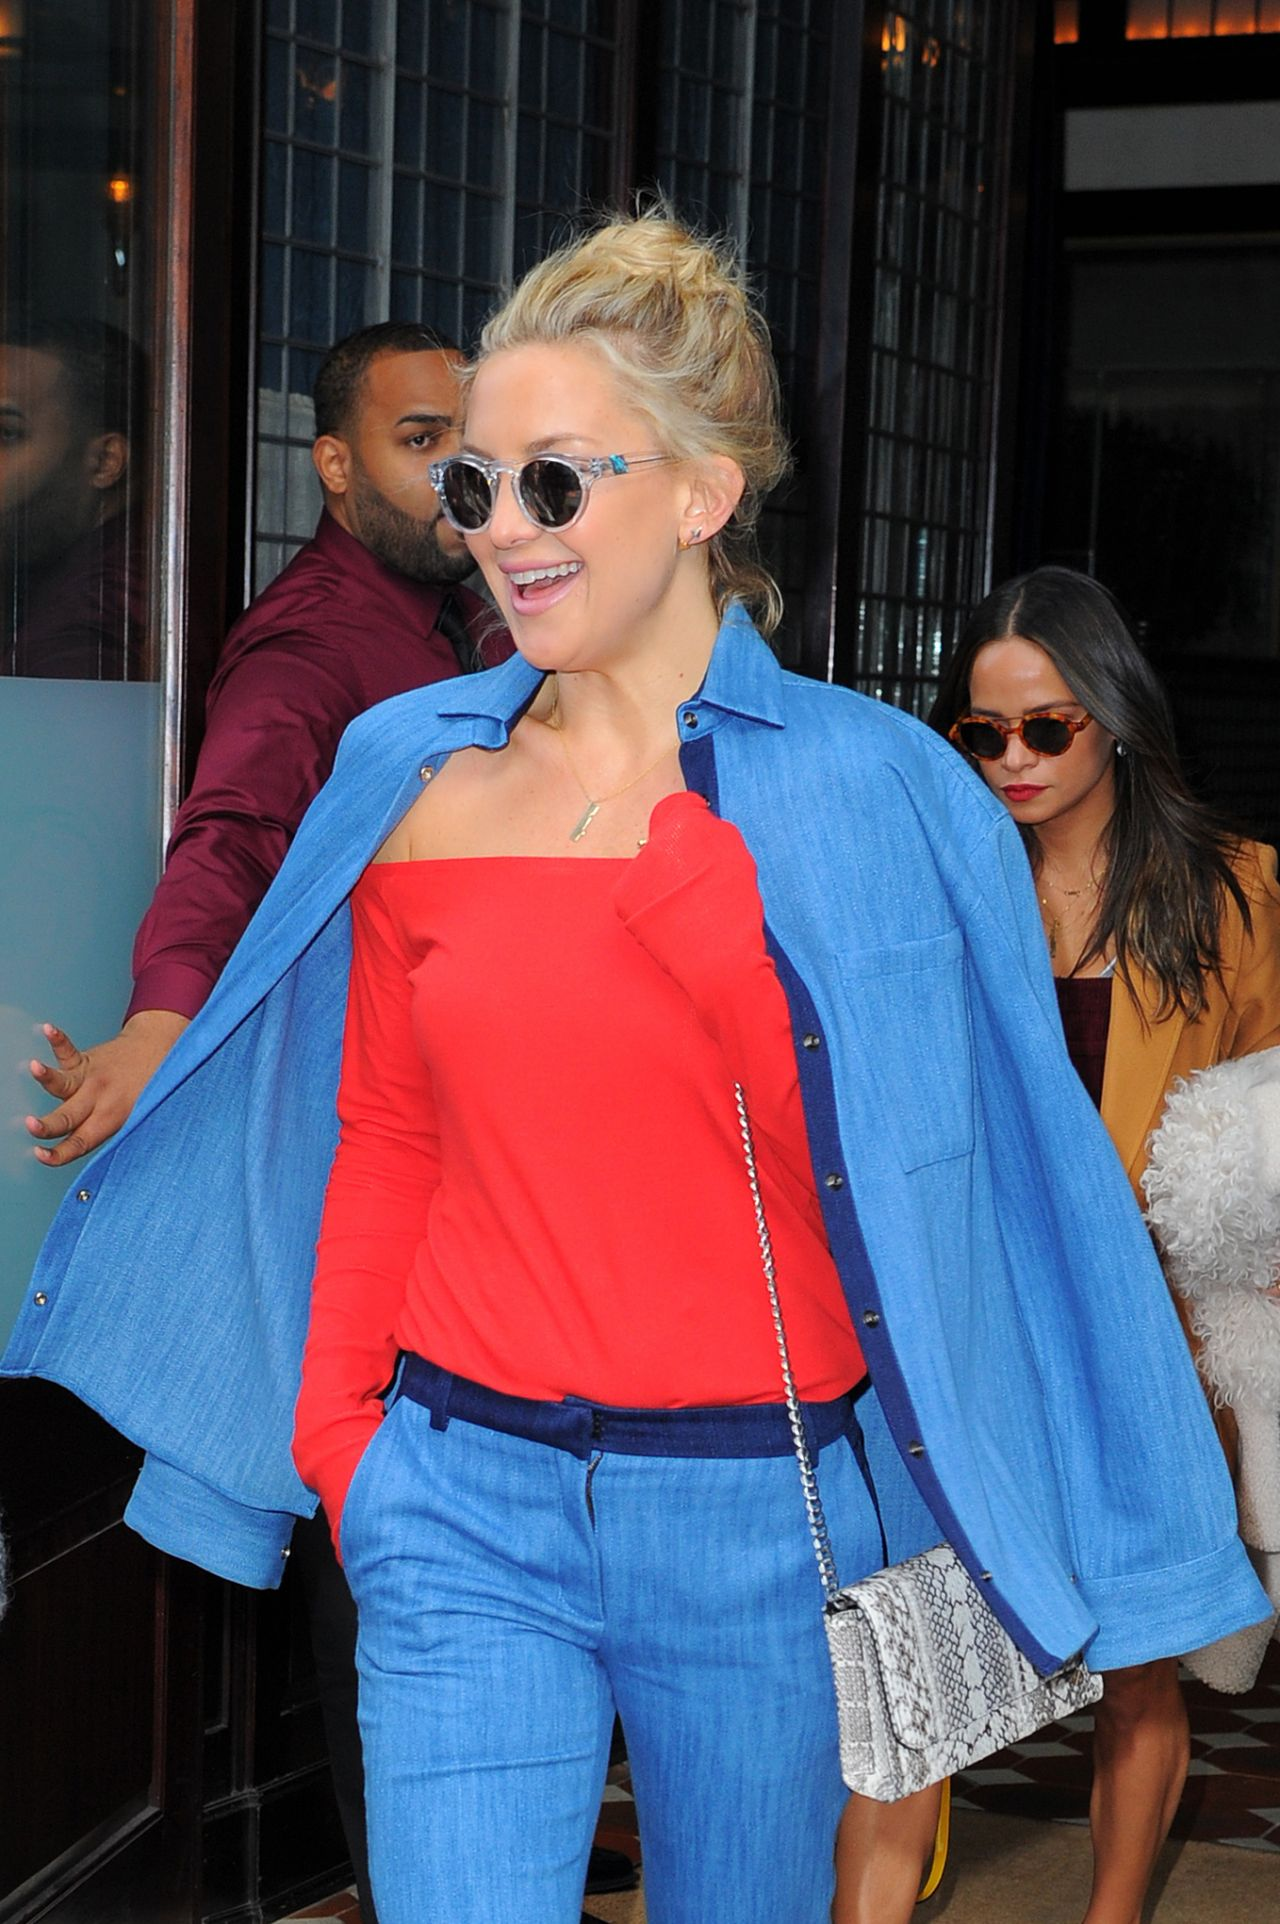 kate-hudson-style-leaving-her-hotel-in-nyc-october-2015_2